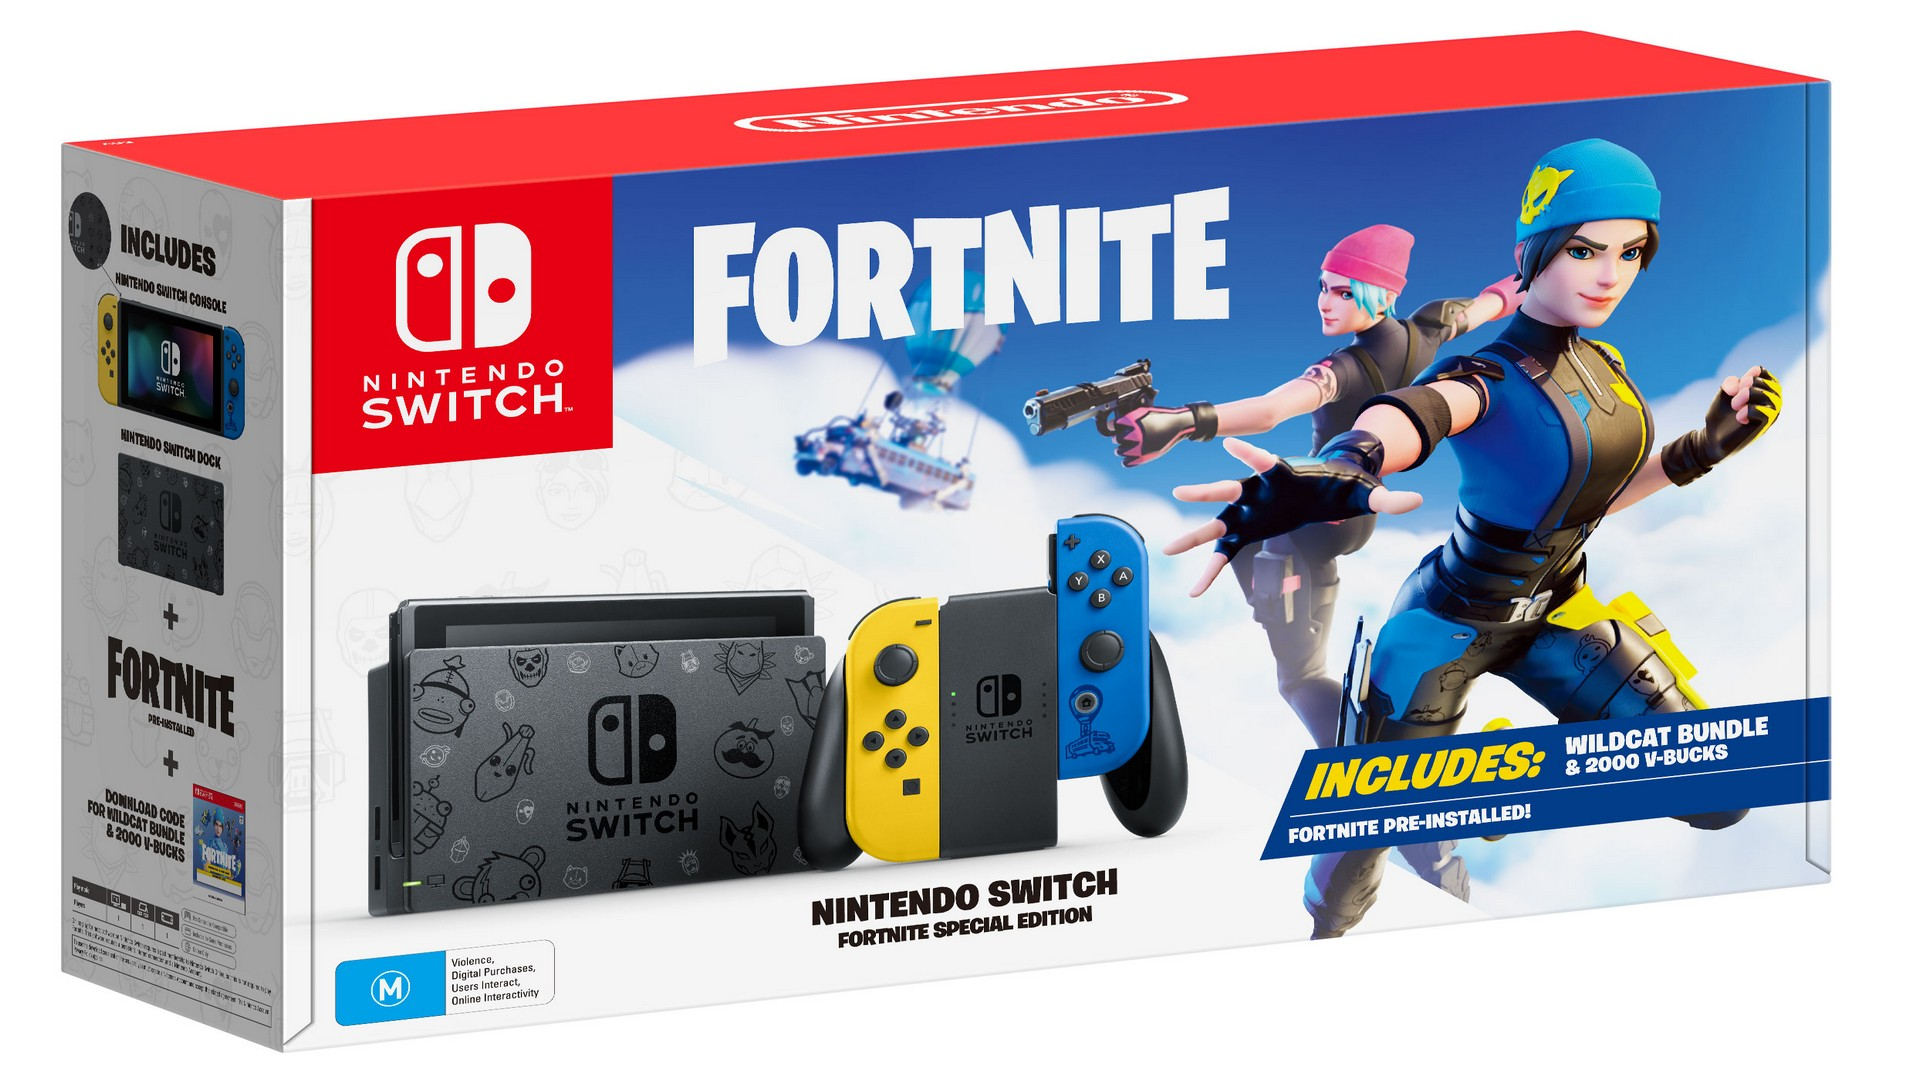 Nintendo Switch Fortnite Special Edition Console Bundle, Hitting Australia And New Zealand On 6th November